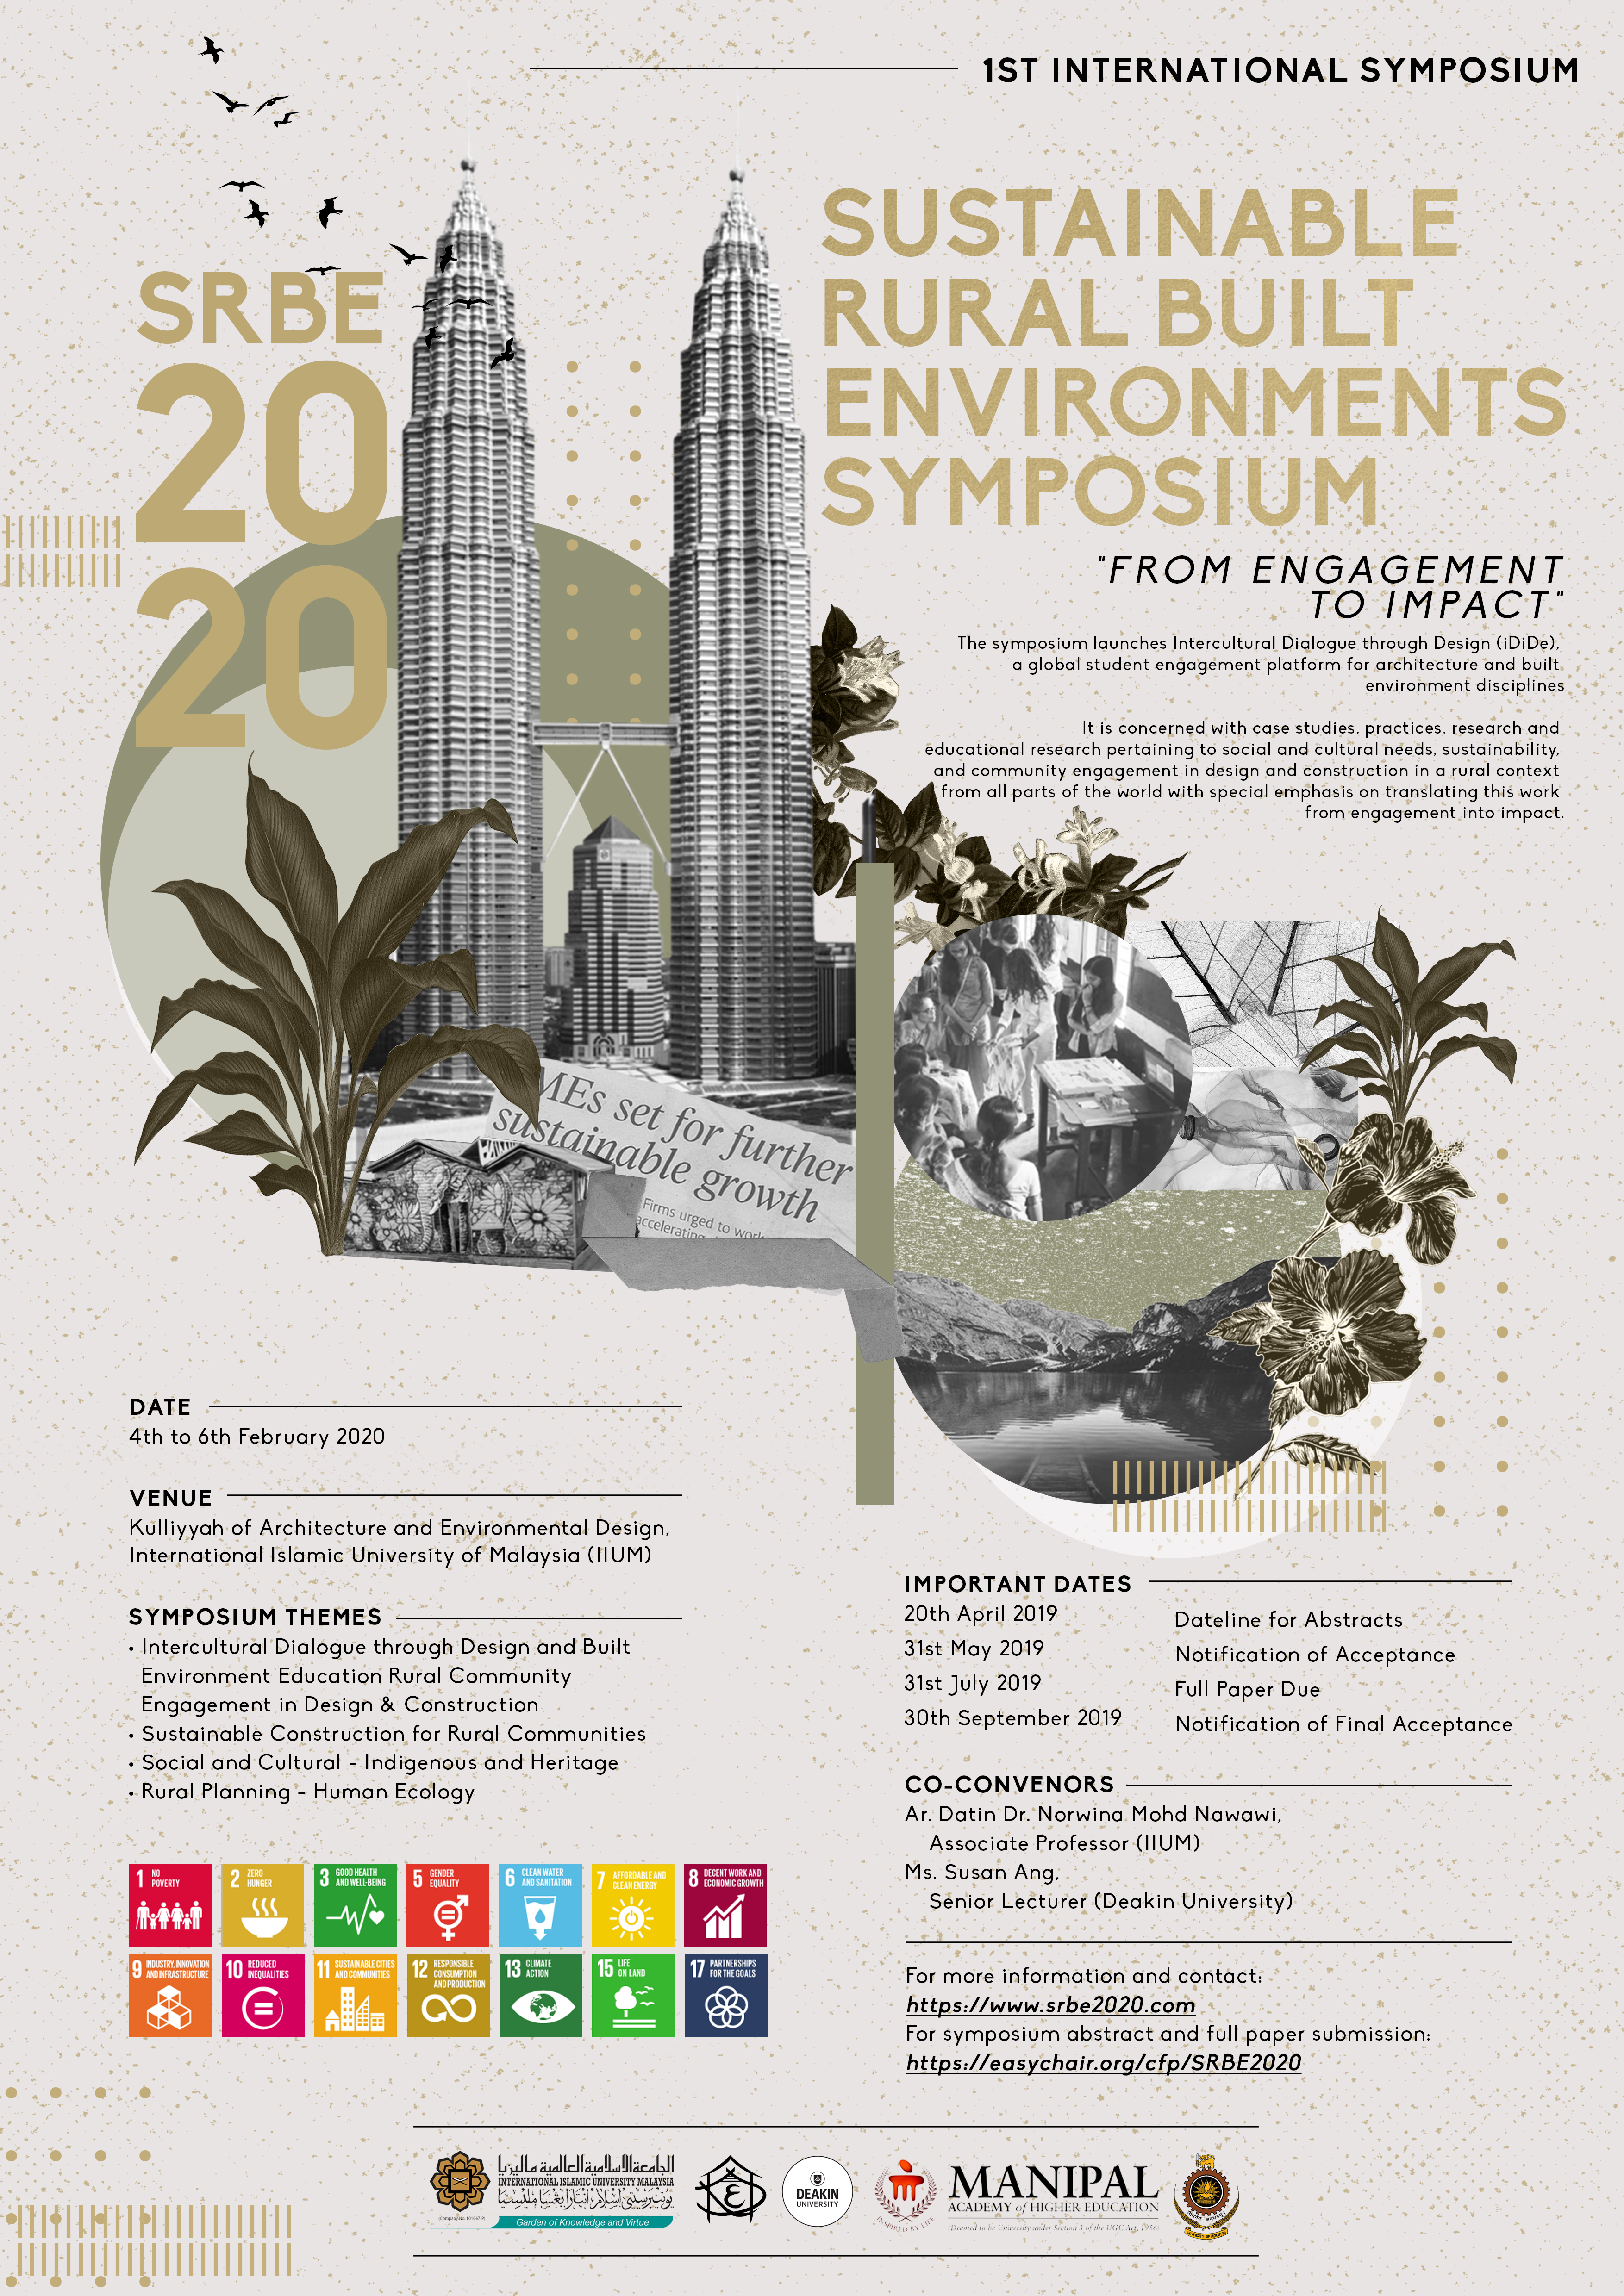 Sustainable Rural Built Environments Symposium (SRBE) 2020